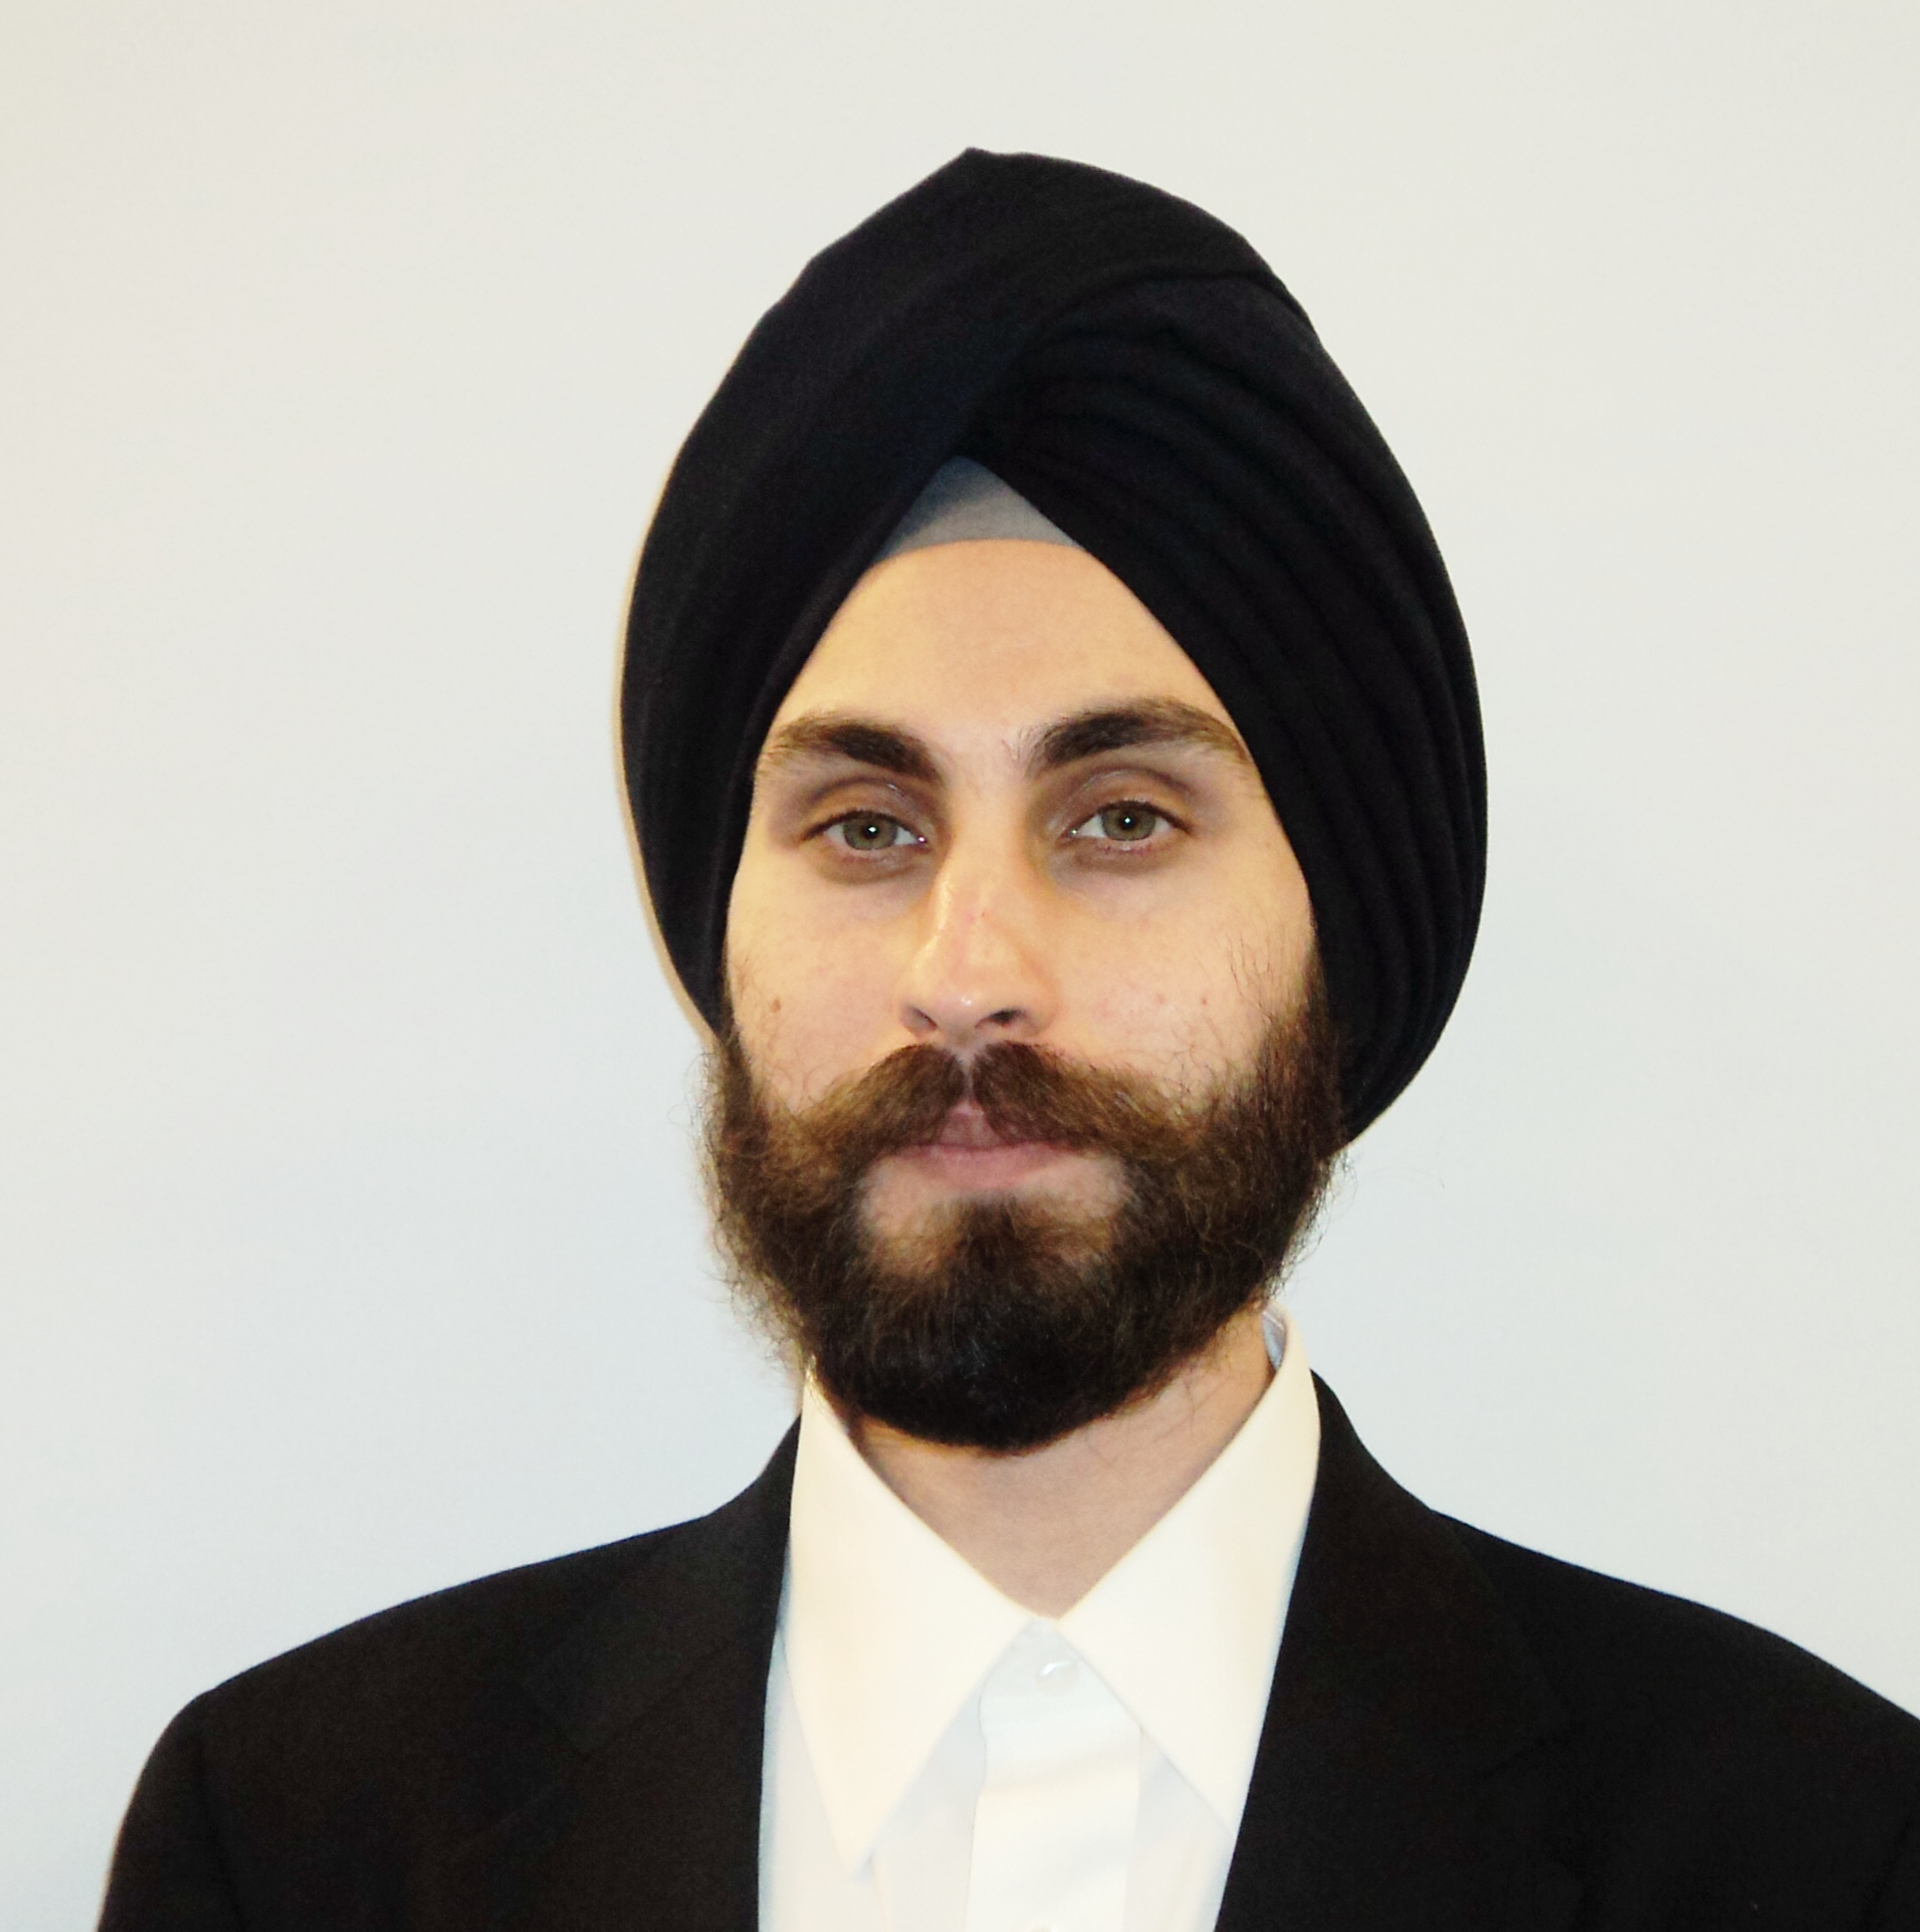 Rajdeep joined The Sikh Coalition in December 2009.